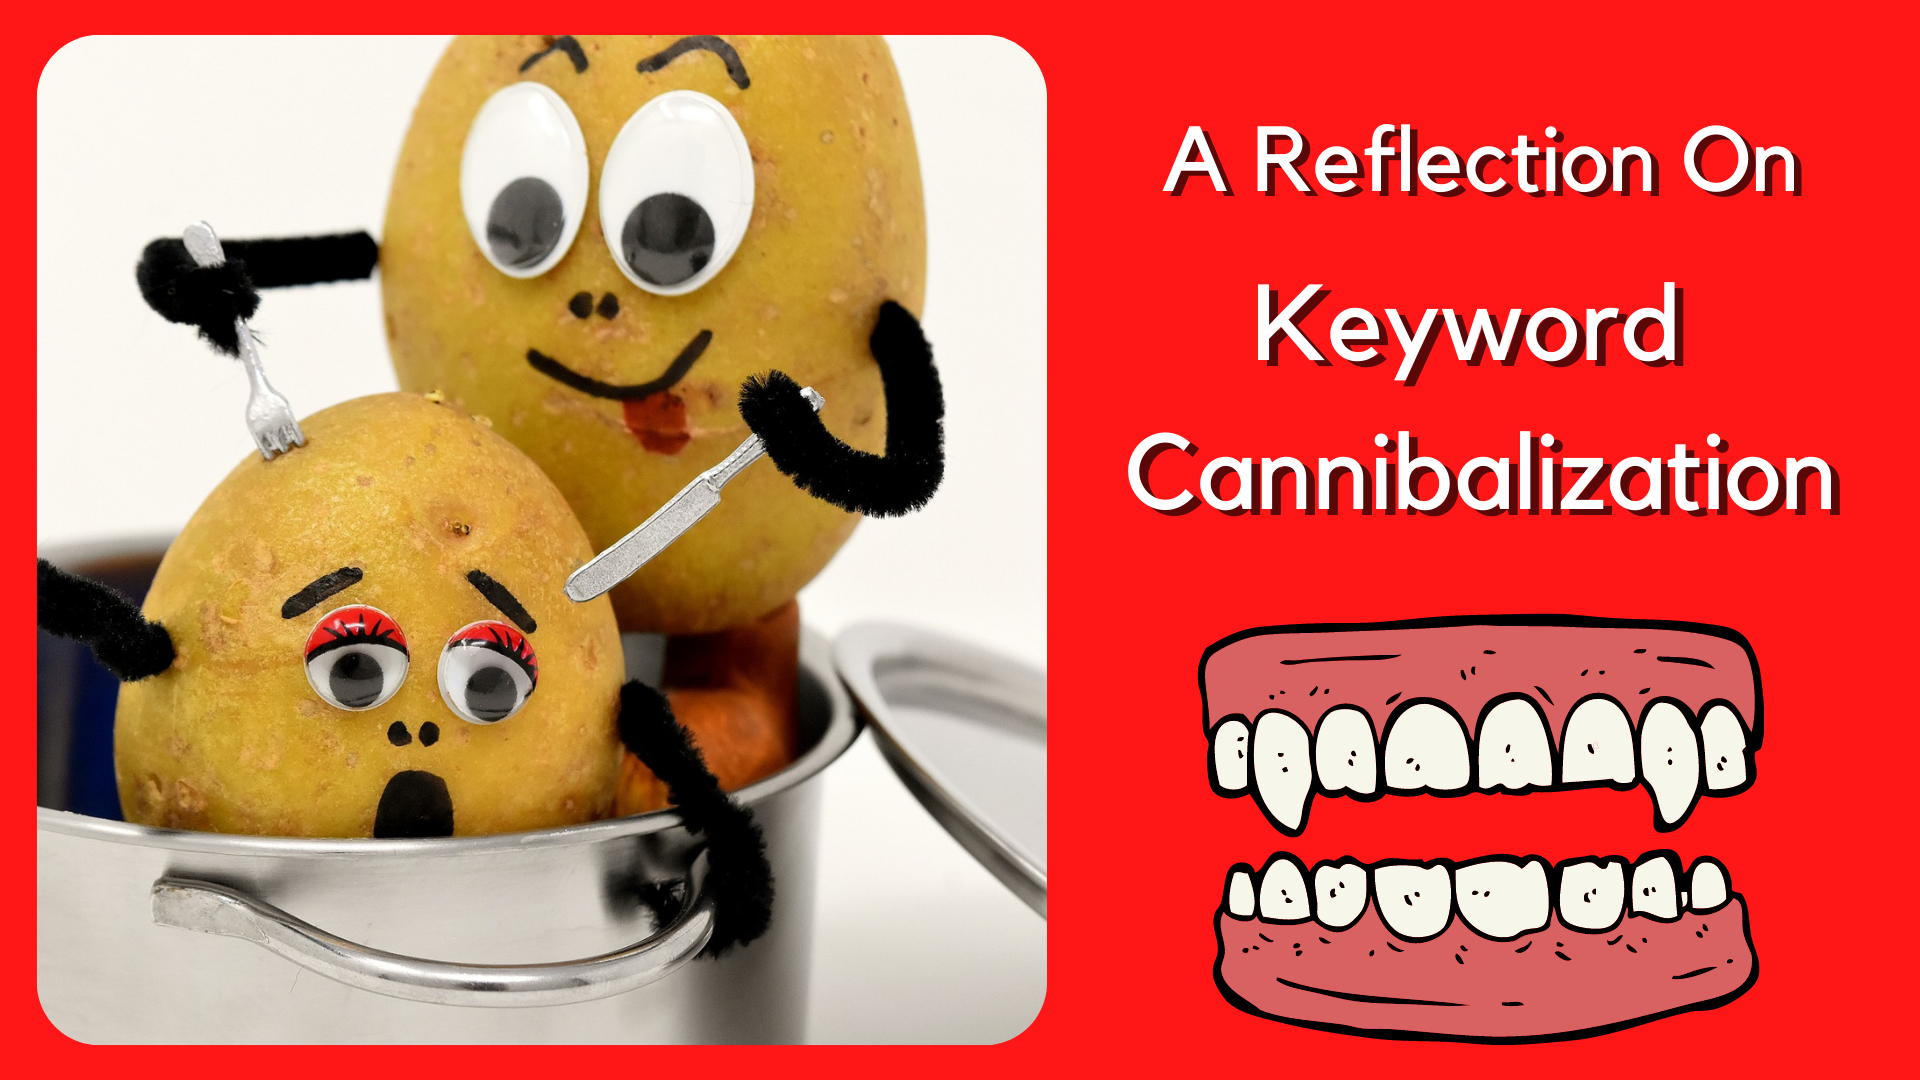 a reflection on keyword cannibalization